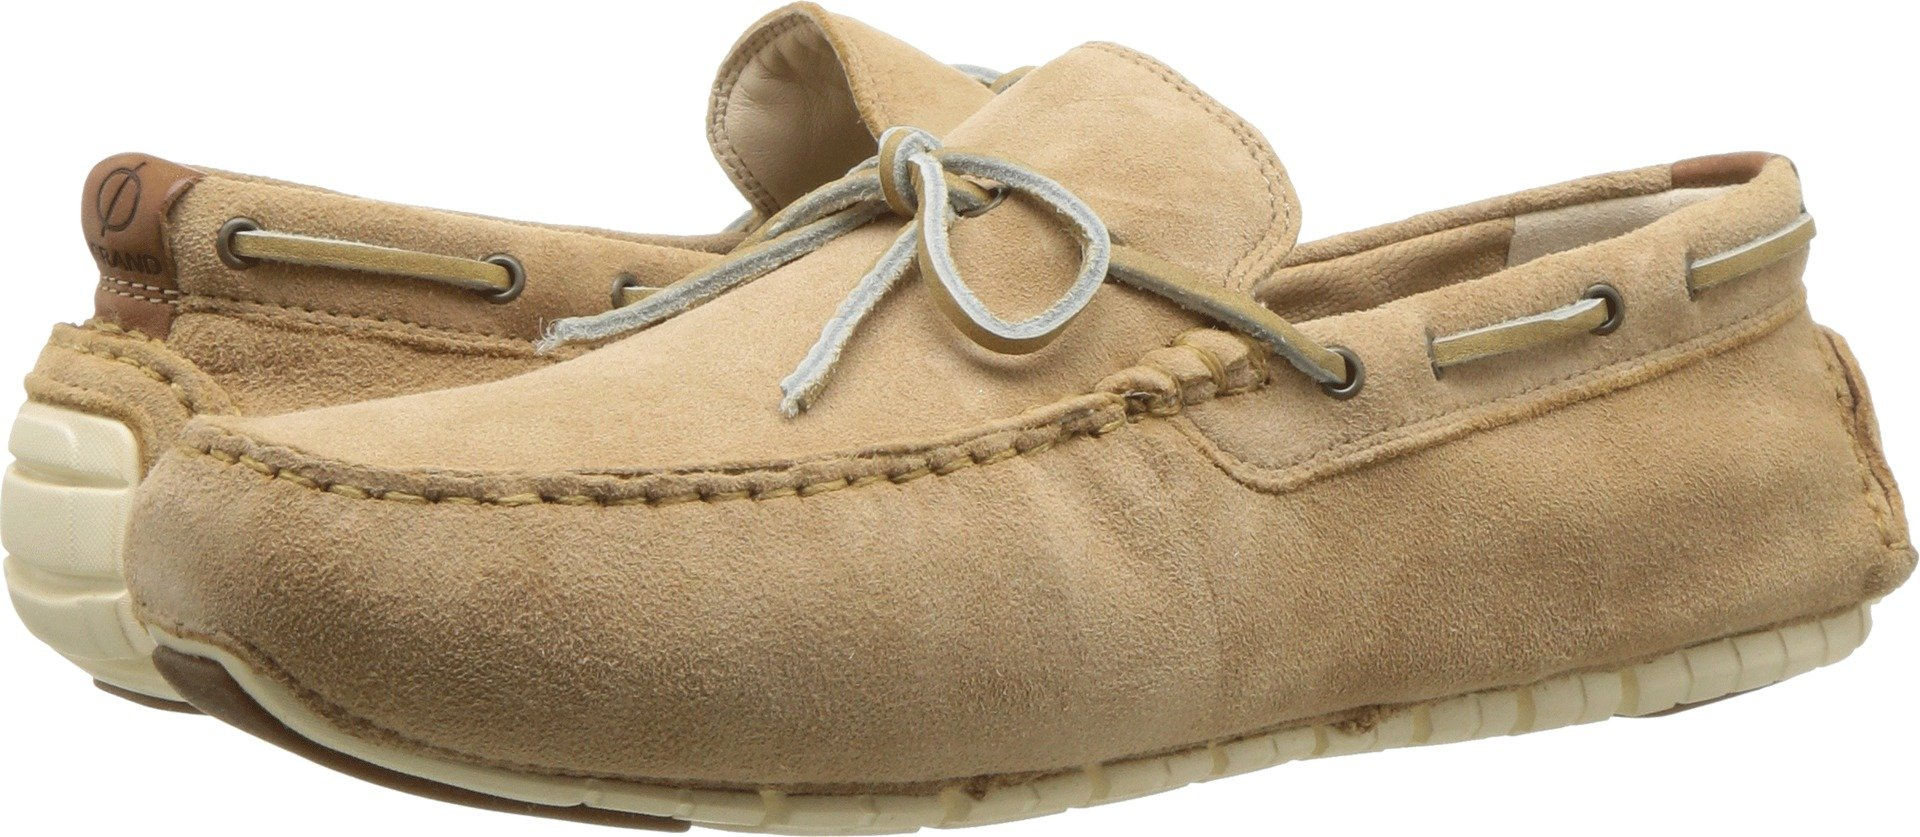 Cole Haan Men's Zerogrand Camp MOC Driver Driving Style Loafer, iced Coffee Suede/Brazilian Sand, 8.5 Medium US